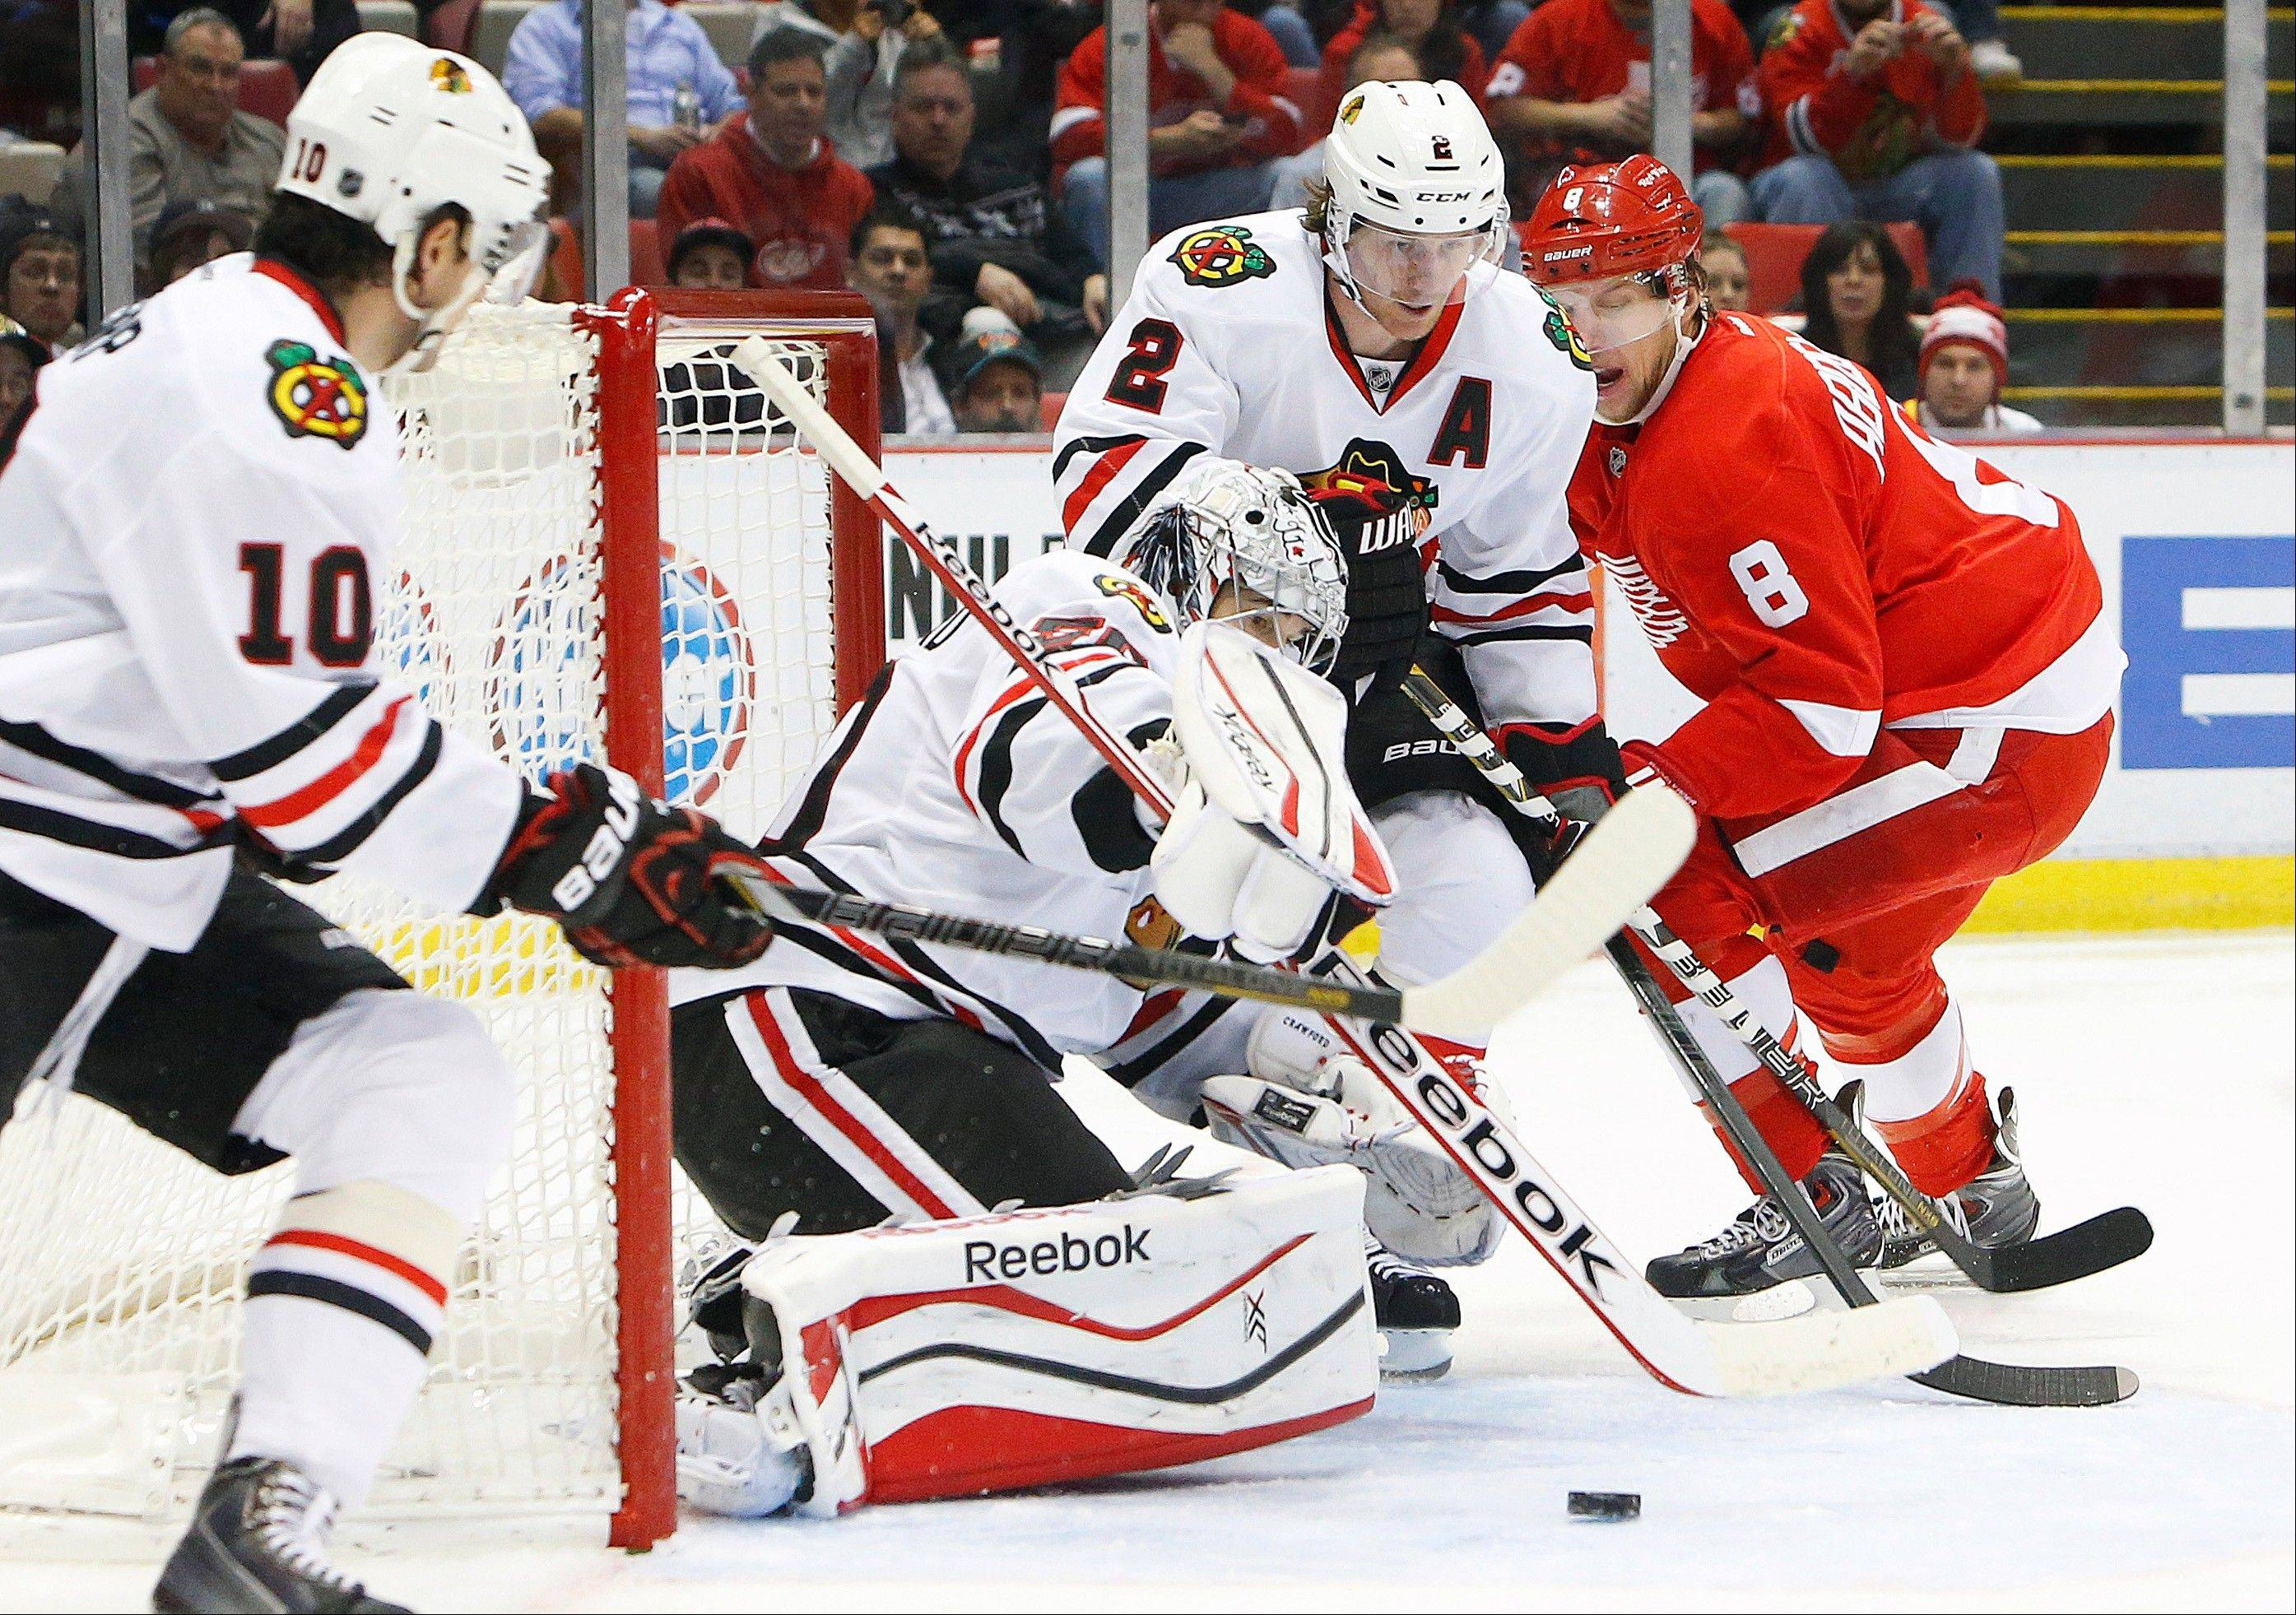 Chicago Blackhawks goalie Corey Crawford, second from left, stops a Detroit Red Wings left wing Justin Abdelkader's (8) shot in the second period of an NHL hockey game Wednesday, Jan. 22, 2014, in Detroit.